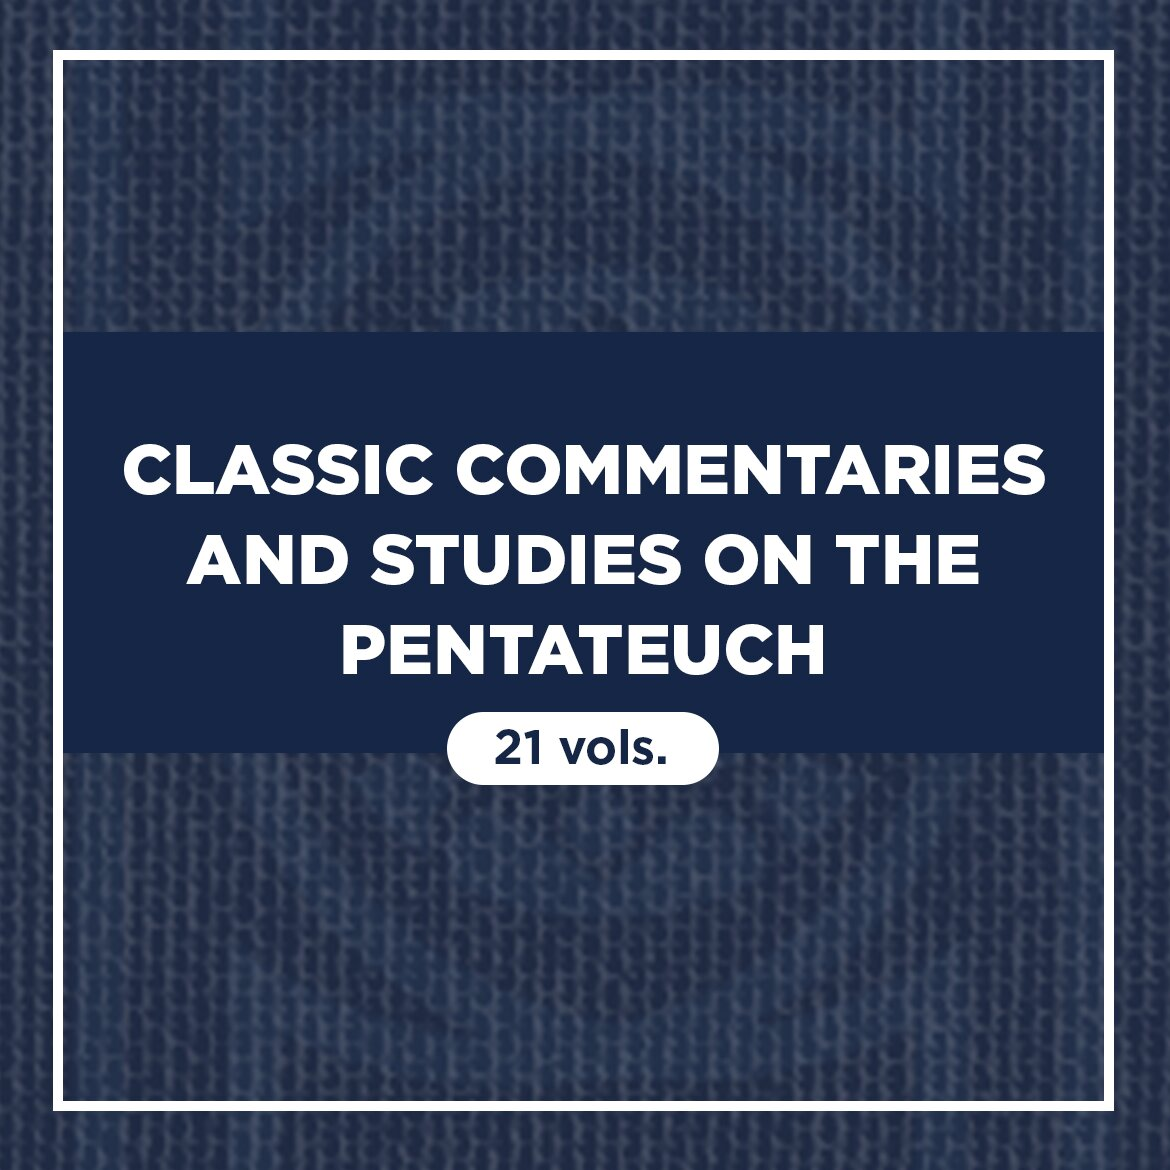 Classic Commentaries and Studies on the Pentateuch (21 vols.)